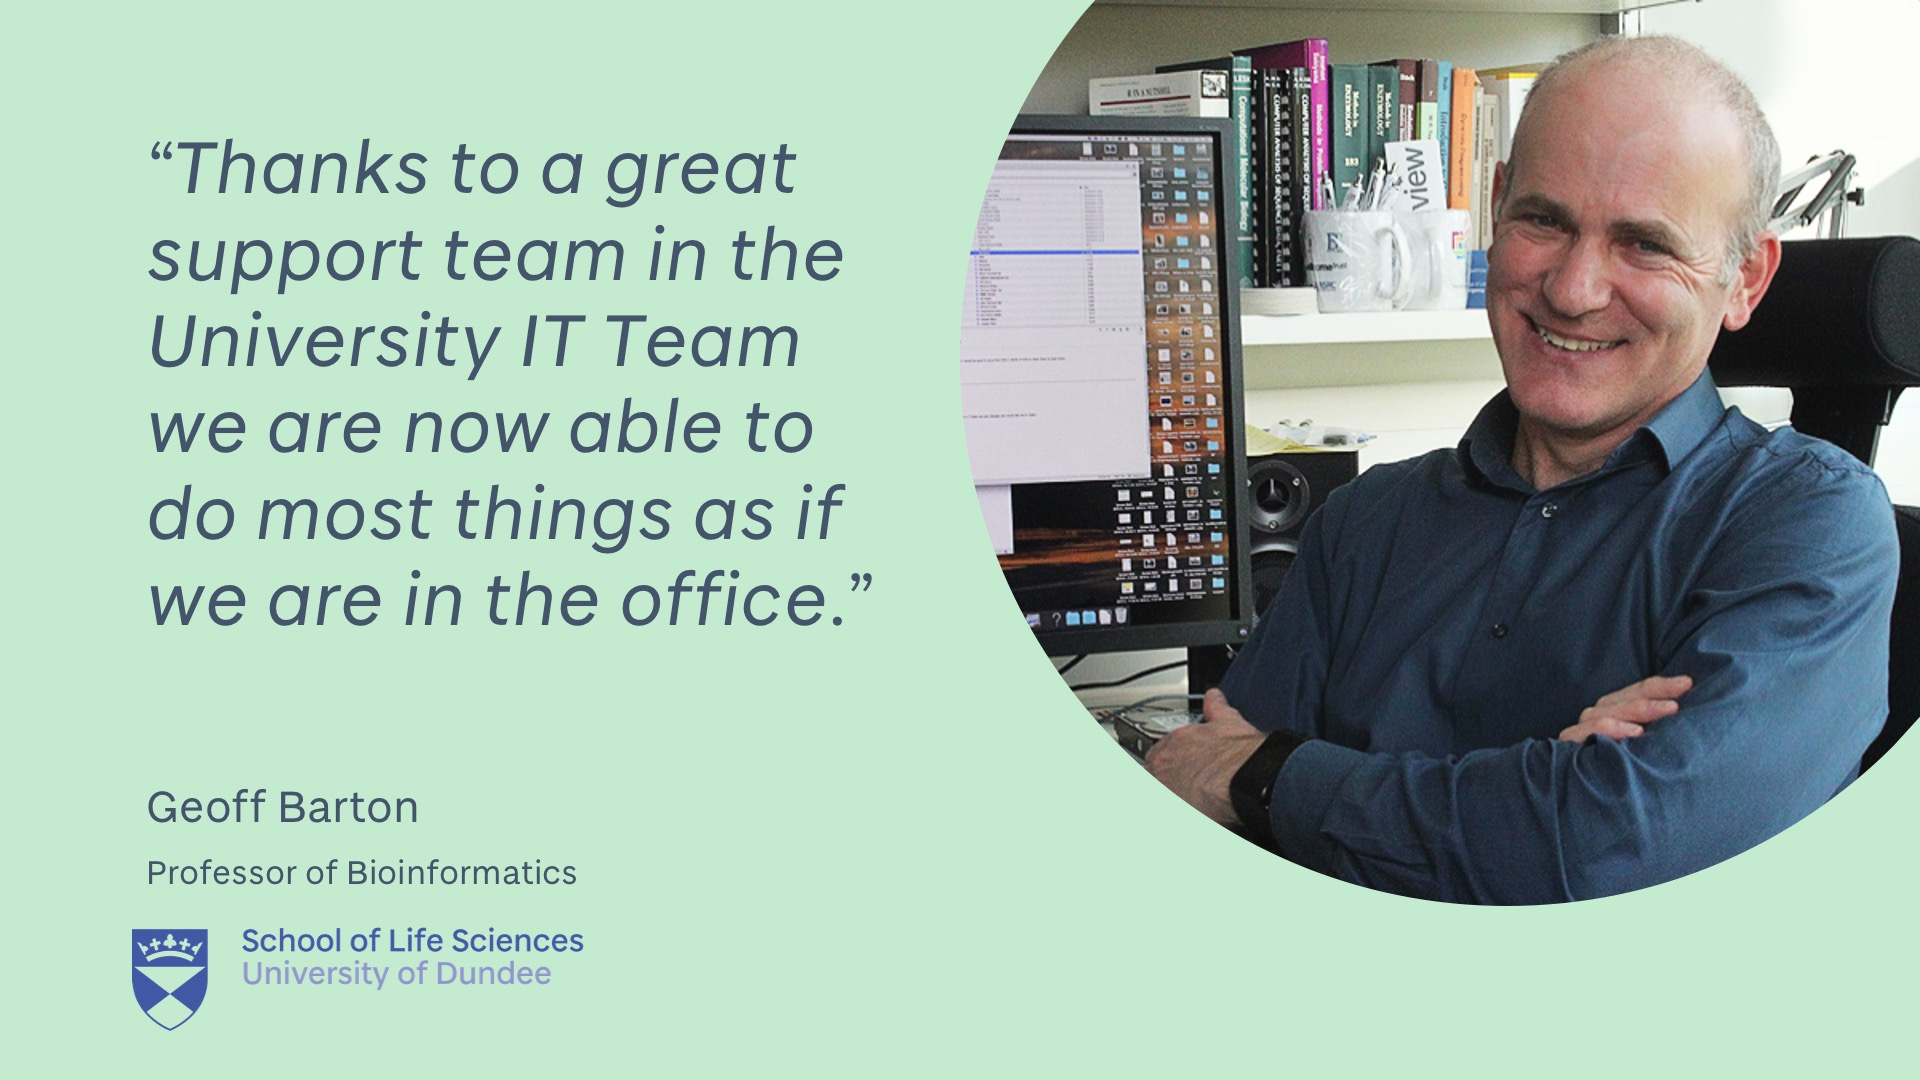 "Geoff Barton quote ""Thanks to a great support team in the University IT Team we are now able to do most things as if we are in the office."""